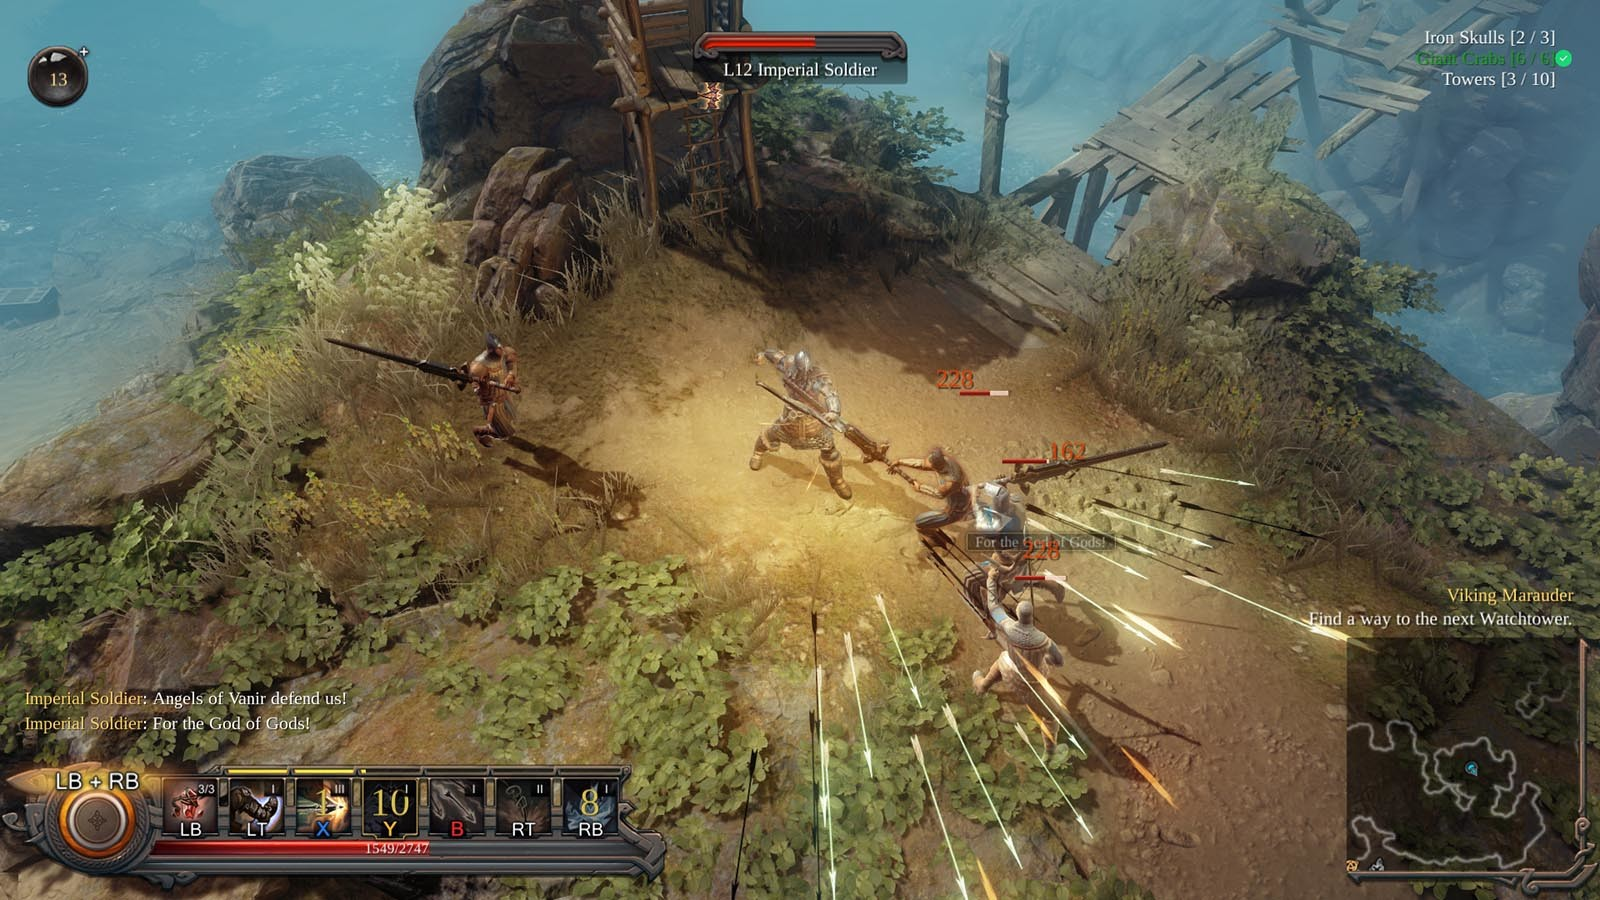 Vikings - Wolves of Midgard [Steam CD Key] for PC, Mac and Linux - Buy now